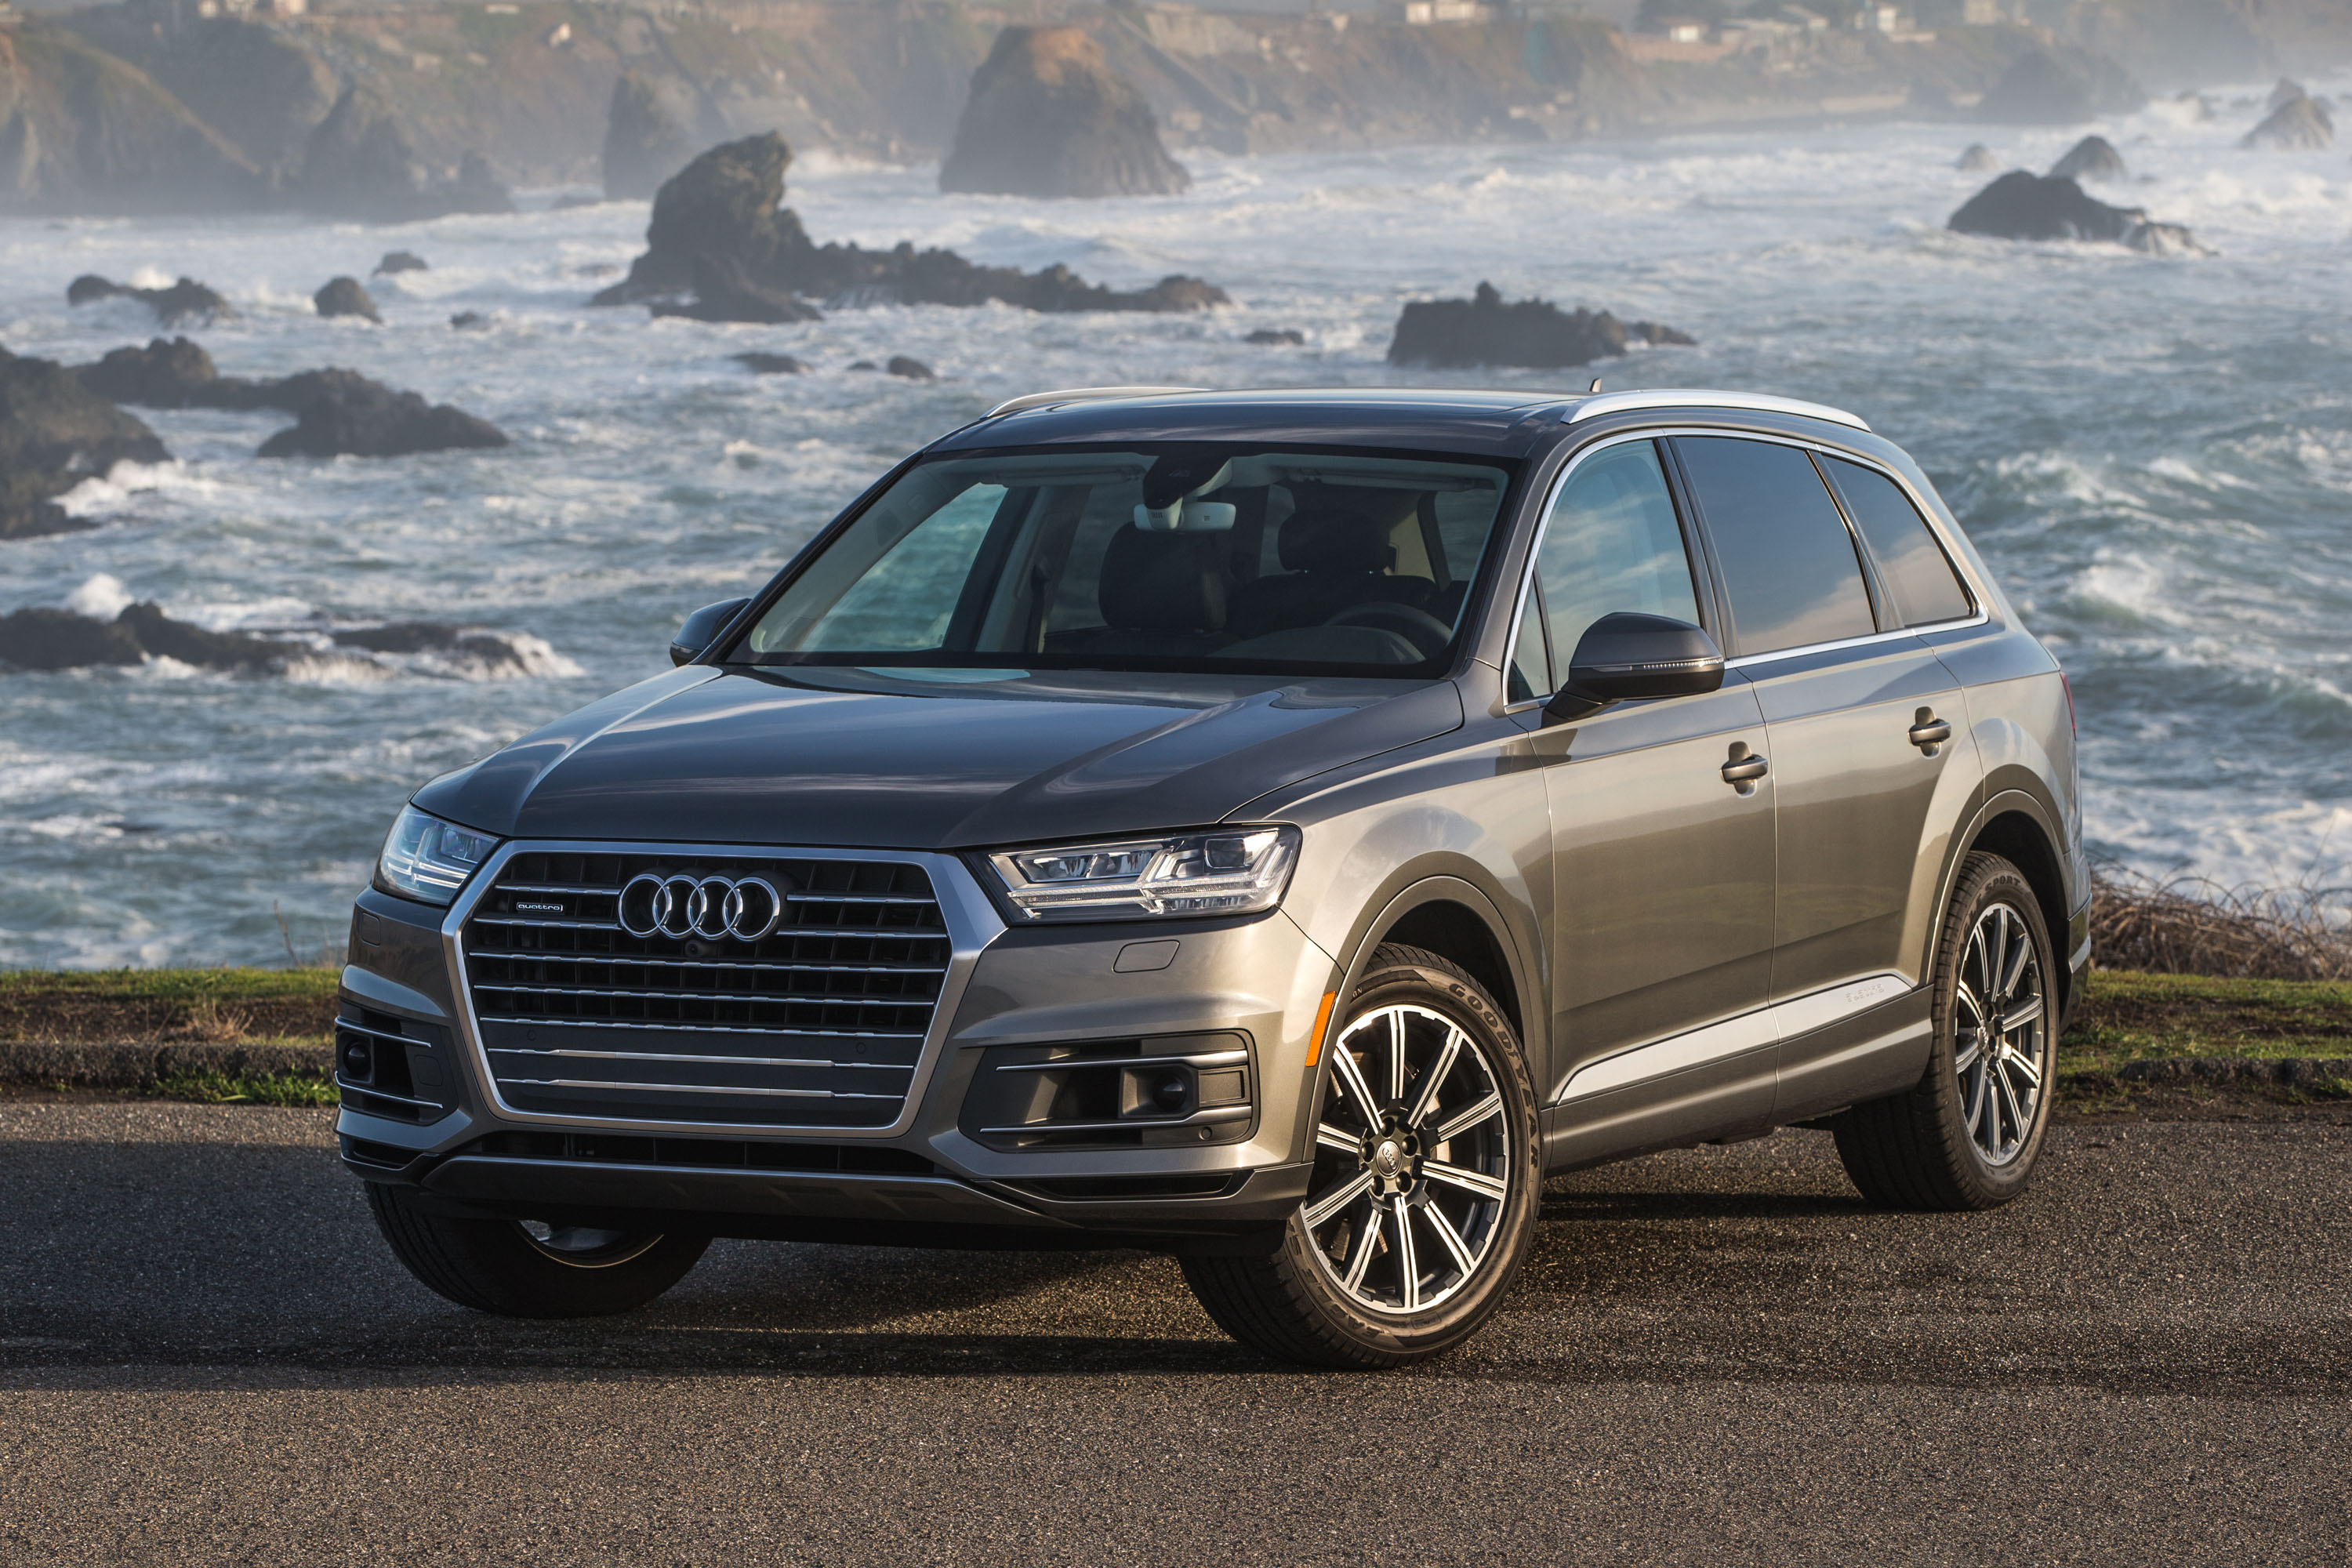 Audi Of Atlanta >> 2018 Audi Q7 Premium Plus First Drive Review